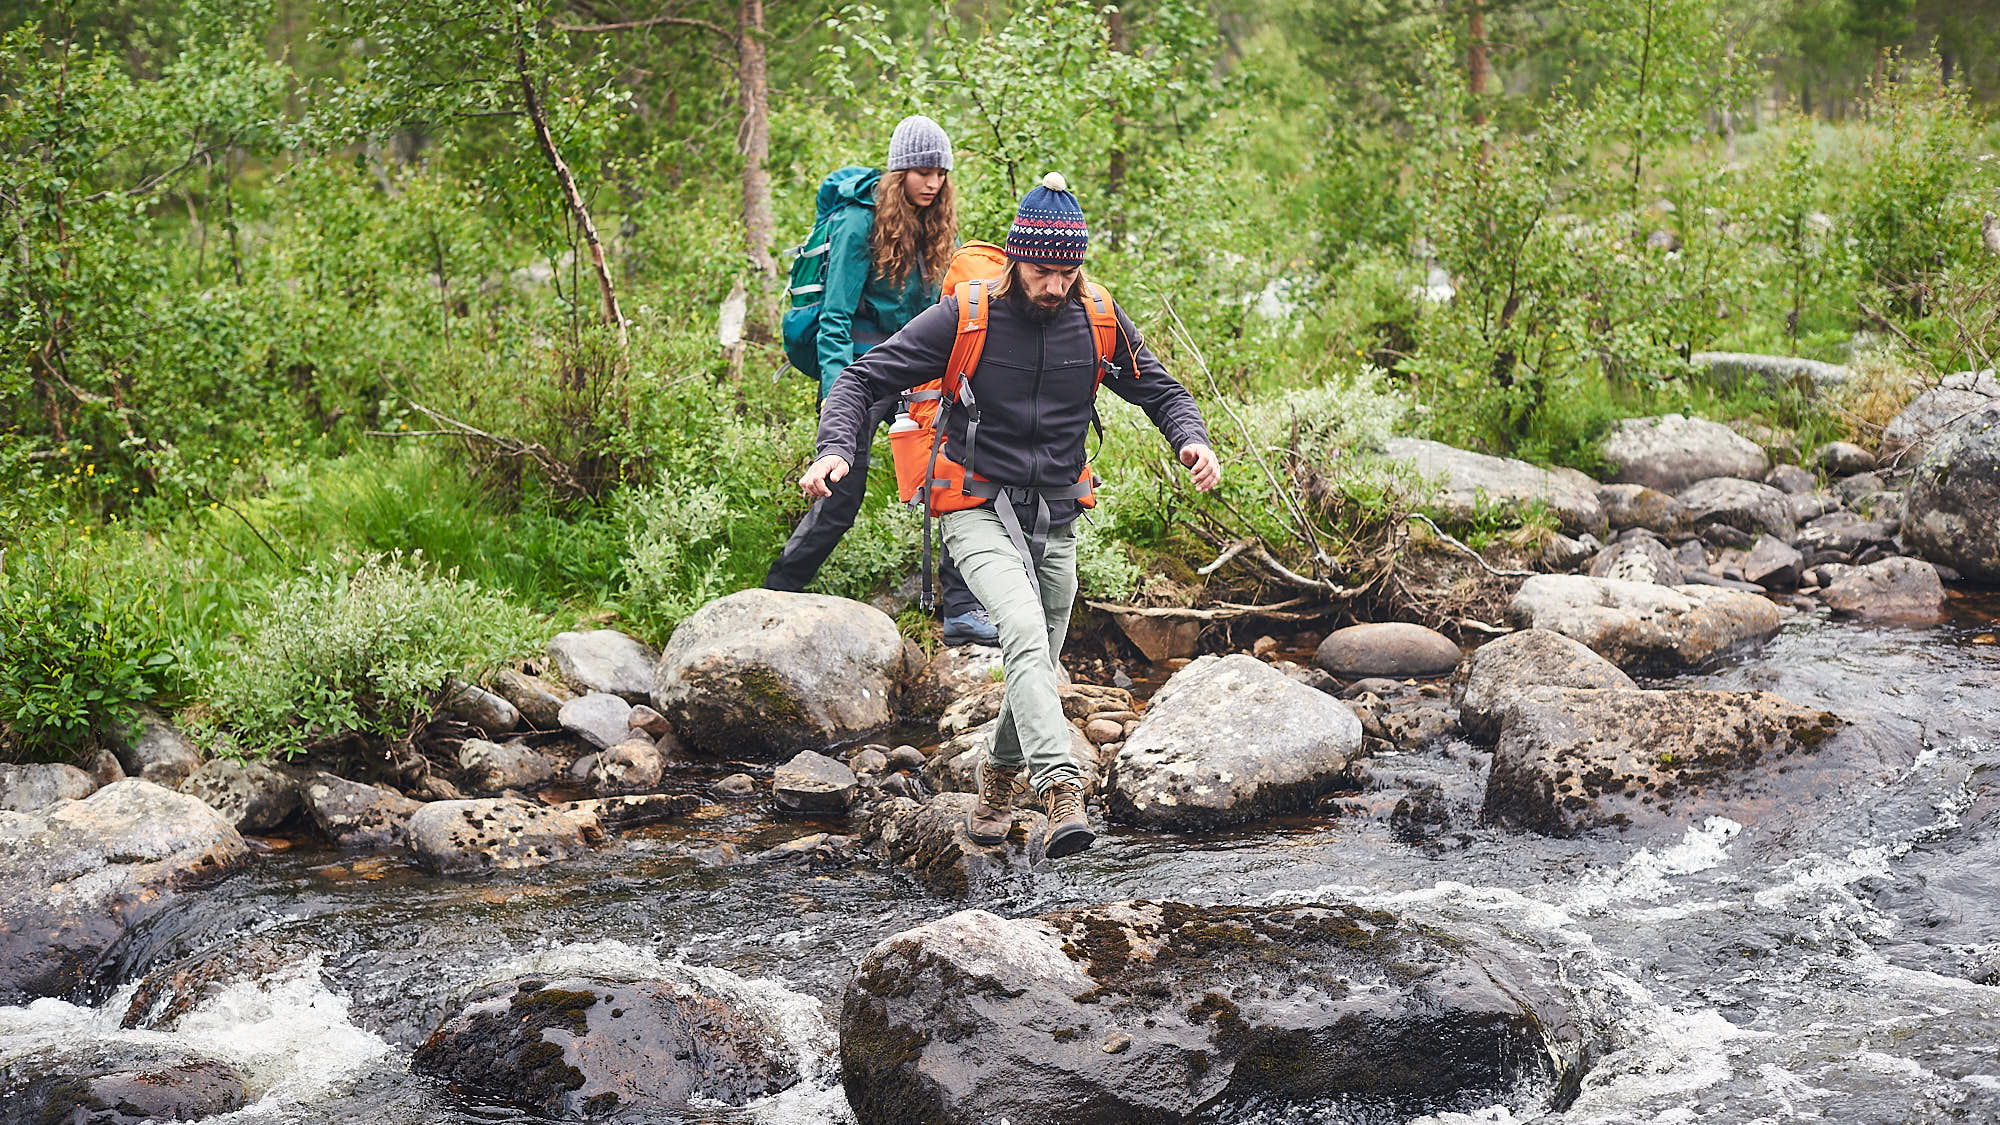 Hikers crossing a wild river in Norway